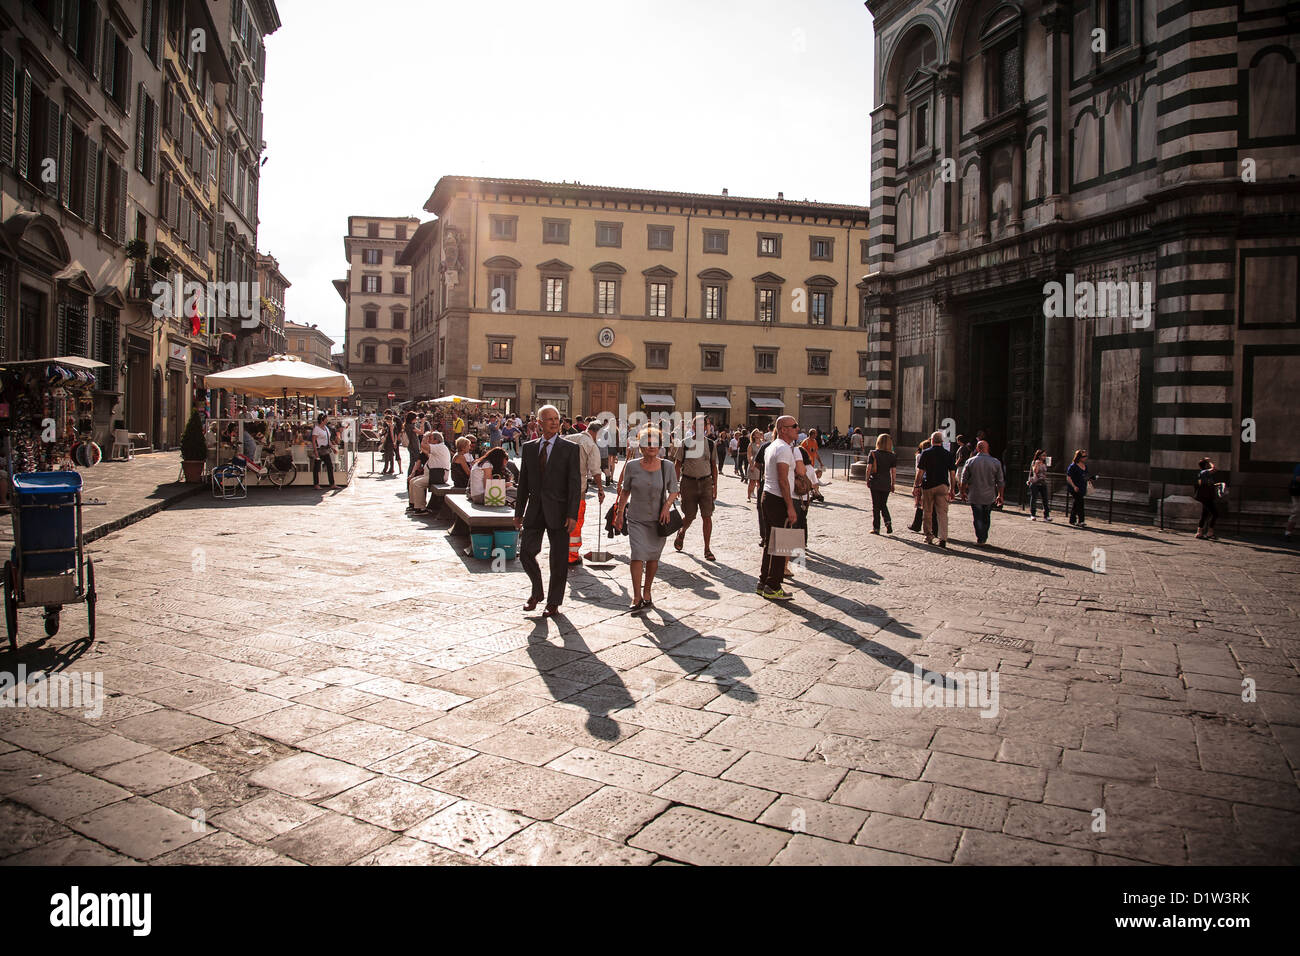 Tourists and locals wander through the Piazza del Duomo in Florence on a lovely summer evening. - Stock Image